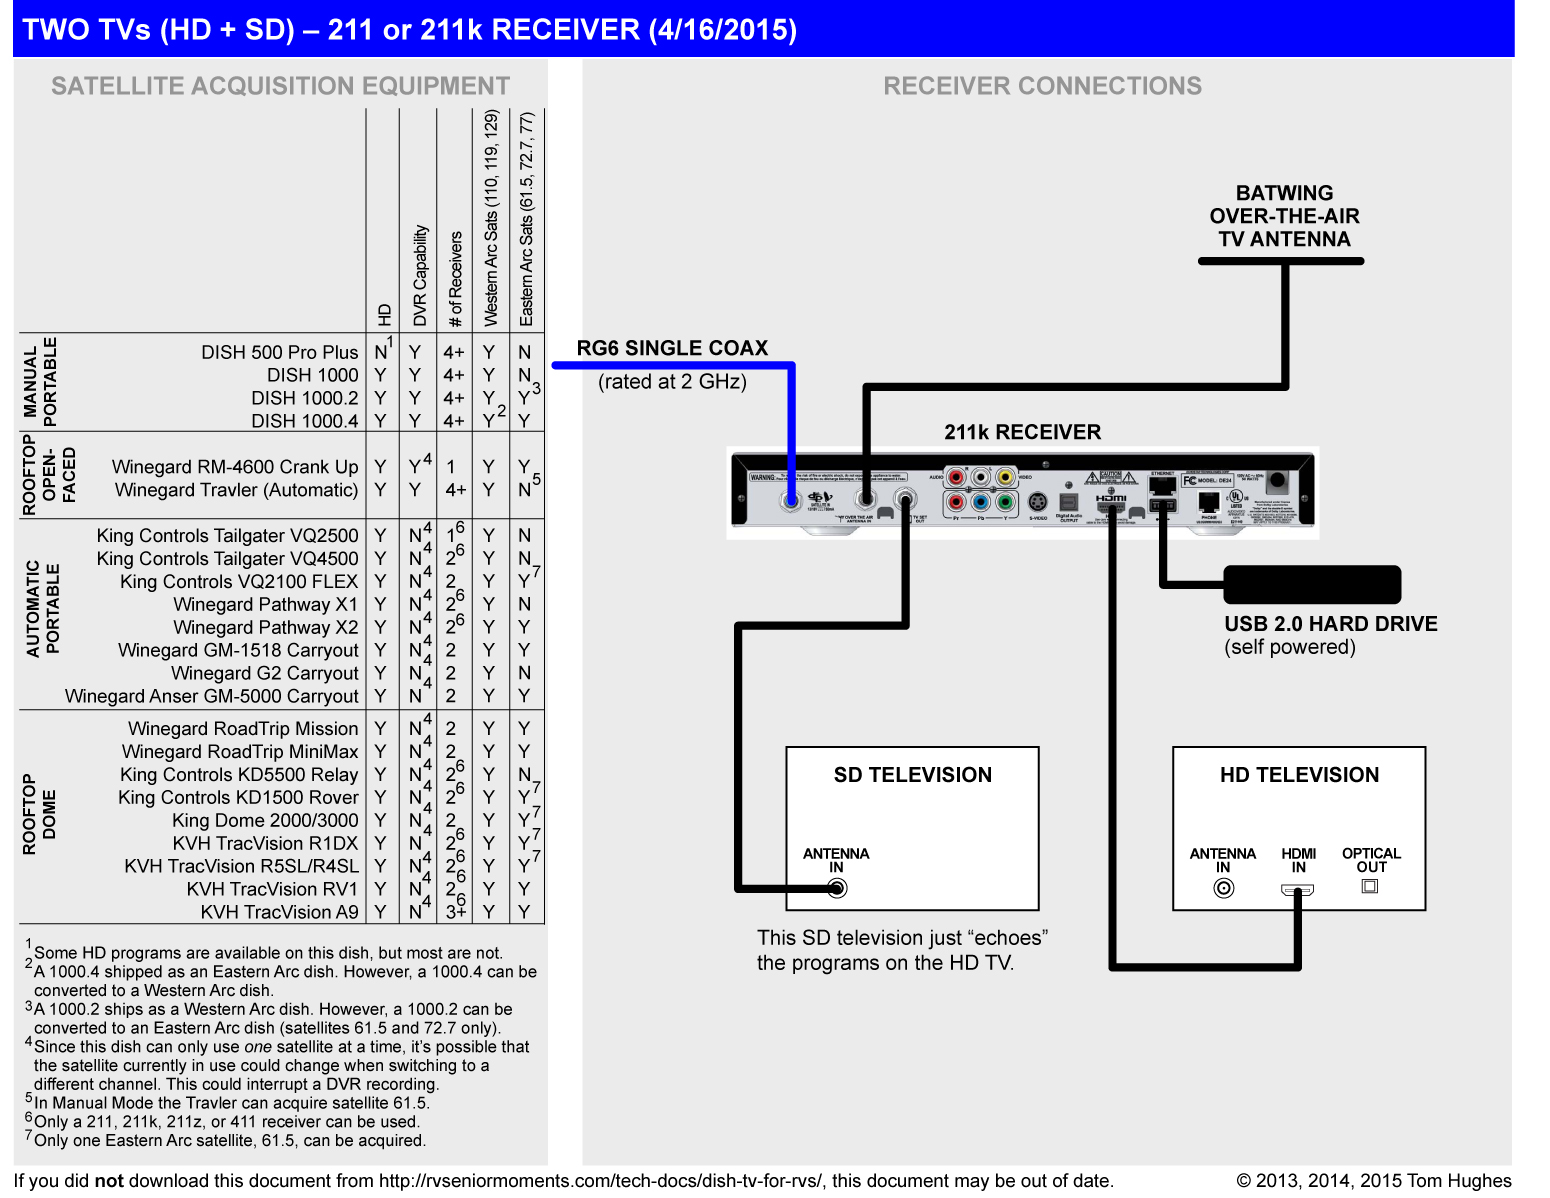 Dish Twotvs K Hdsd Dpi on Dish Work Hopper Wiring Diagram 3